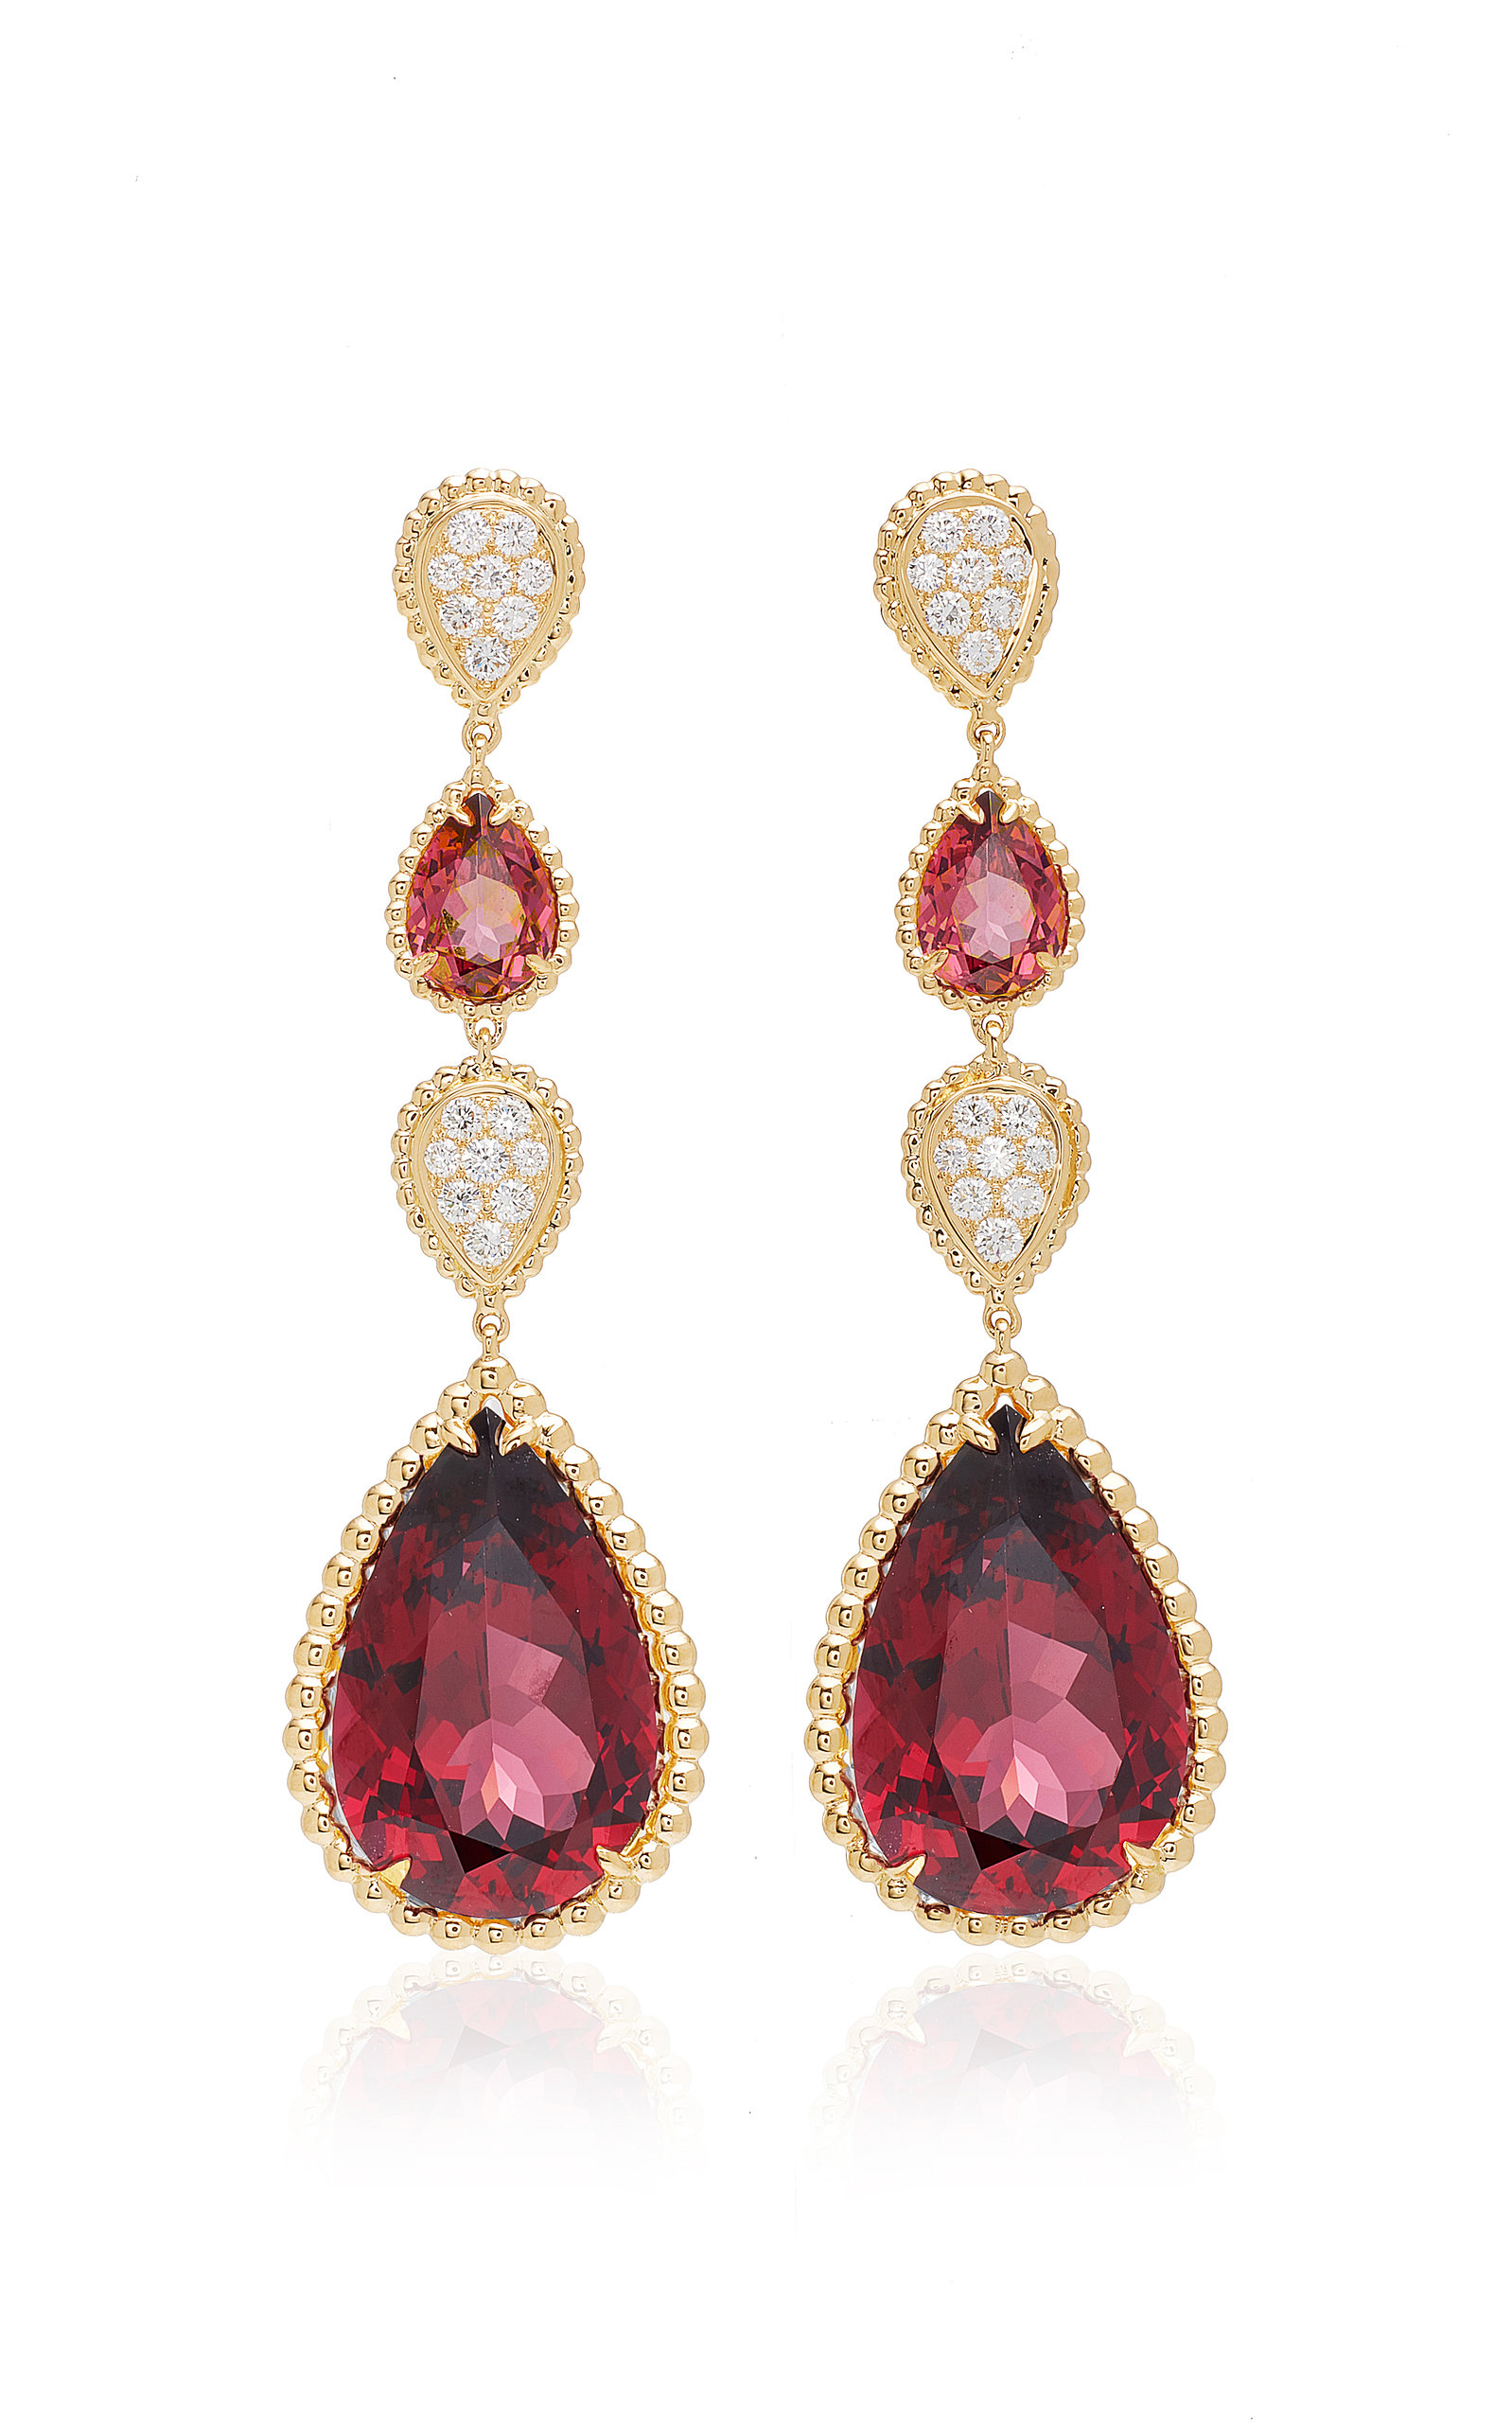 rhodolite garnet droplet metalworks lunar with image earrings quench products